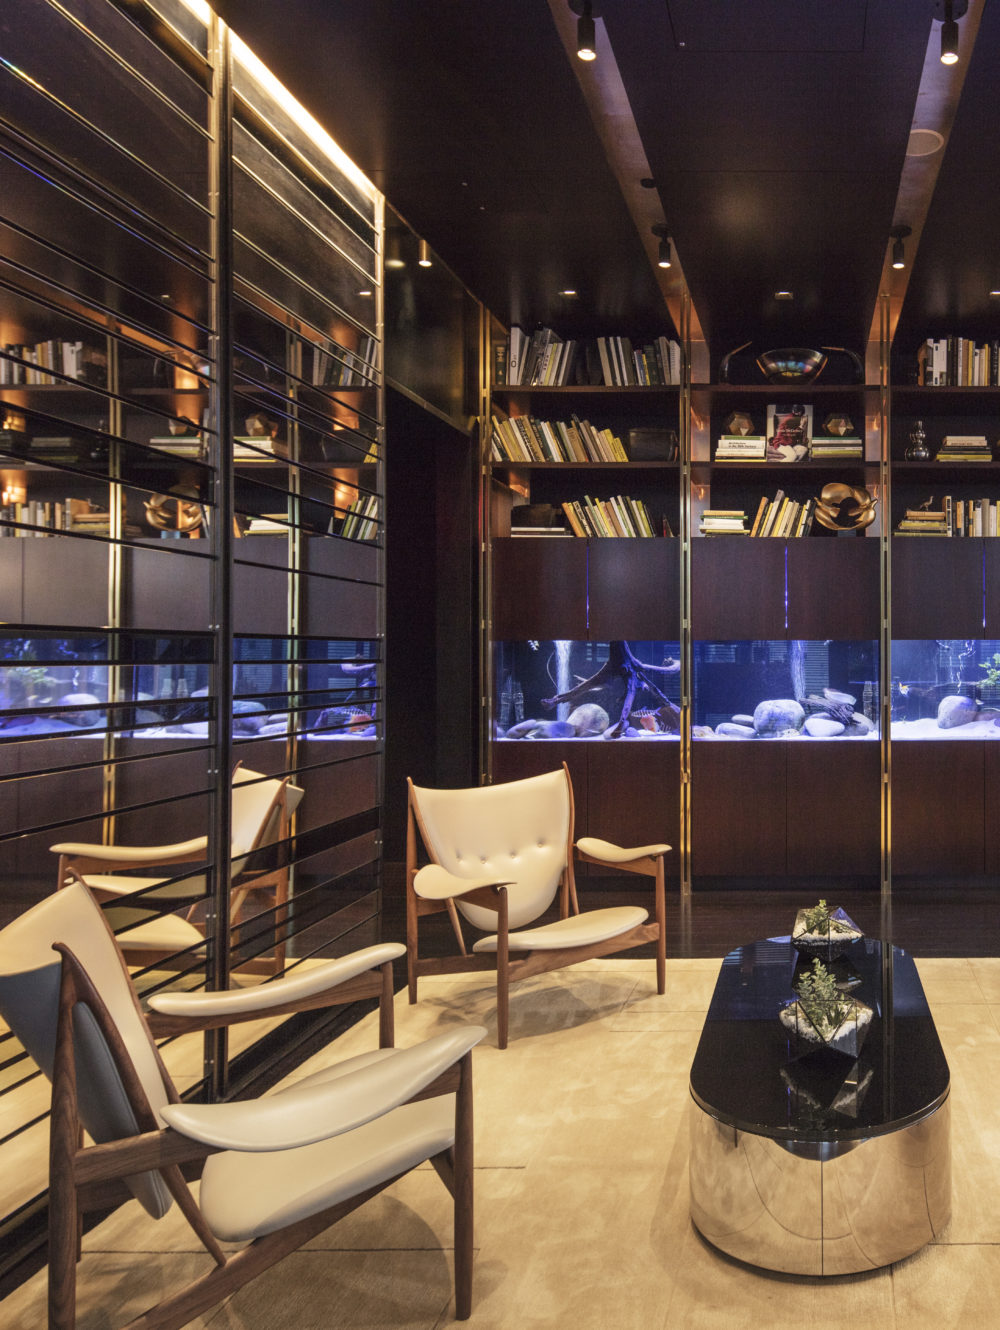 Residents library at One 57 condominiums in New York. Private library with dark wood shelves, aquarium, and four chairs.